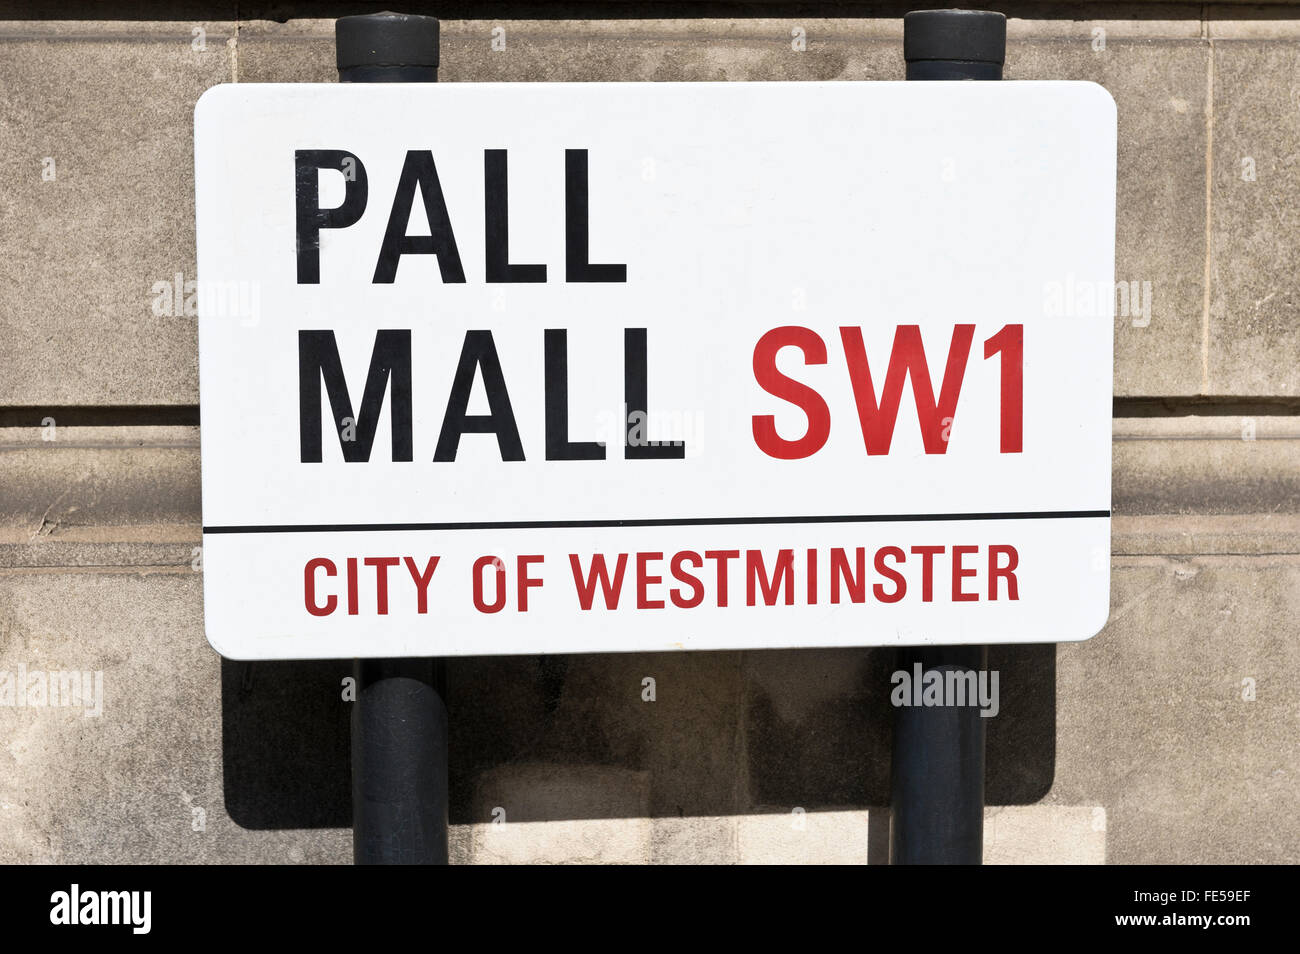 Pall Mall road sign on the side of the road, London, United Kingdom. - Stock Image